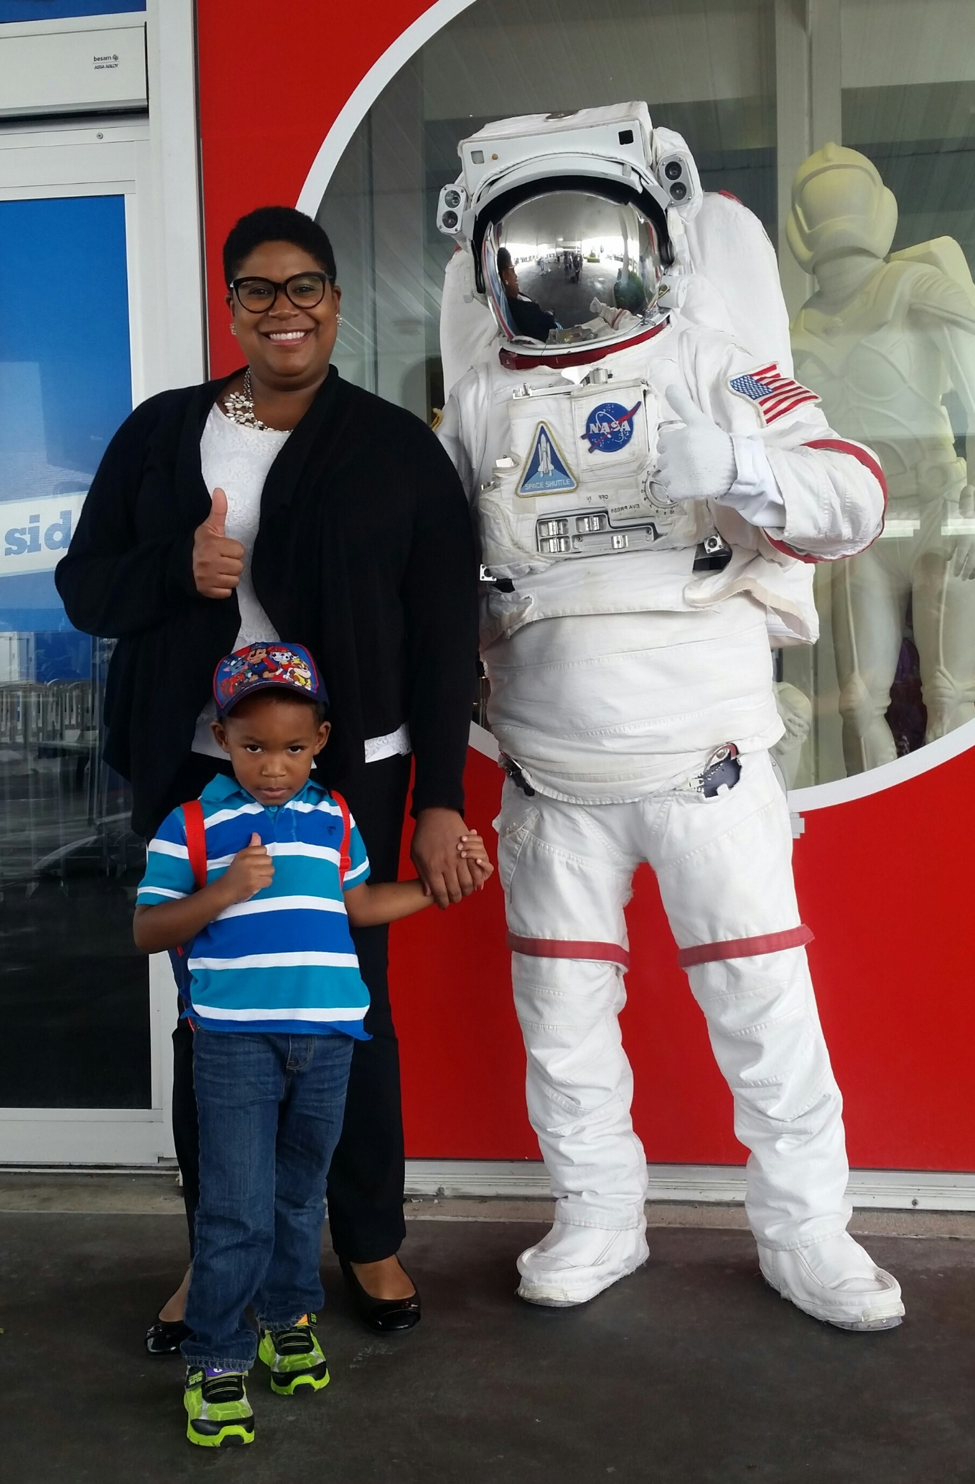 Jamese and son, Jordan, at the Kennedy Space Center in Cape Canaveral, FL.